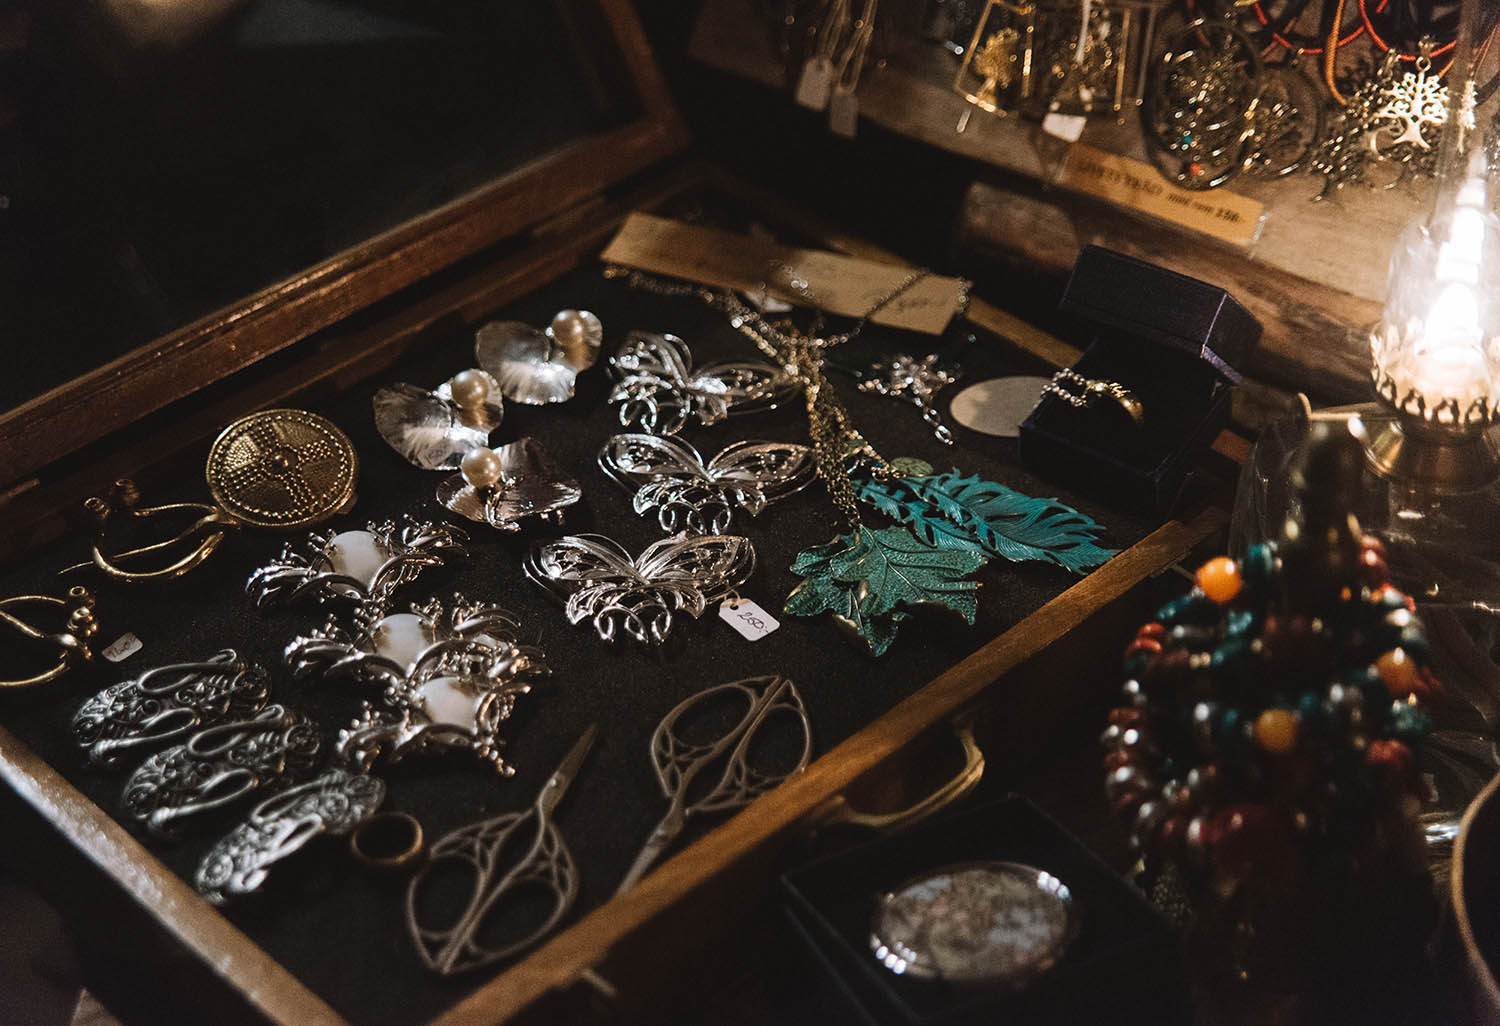 Jewellery at Medieval Christmas Market